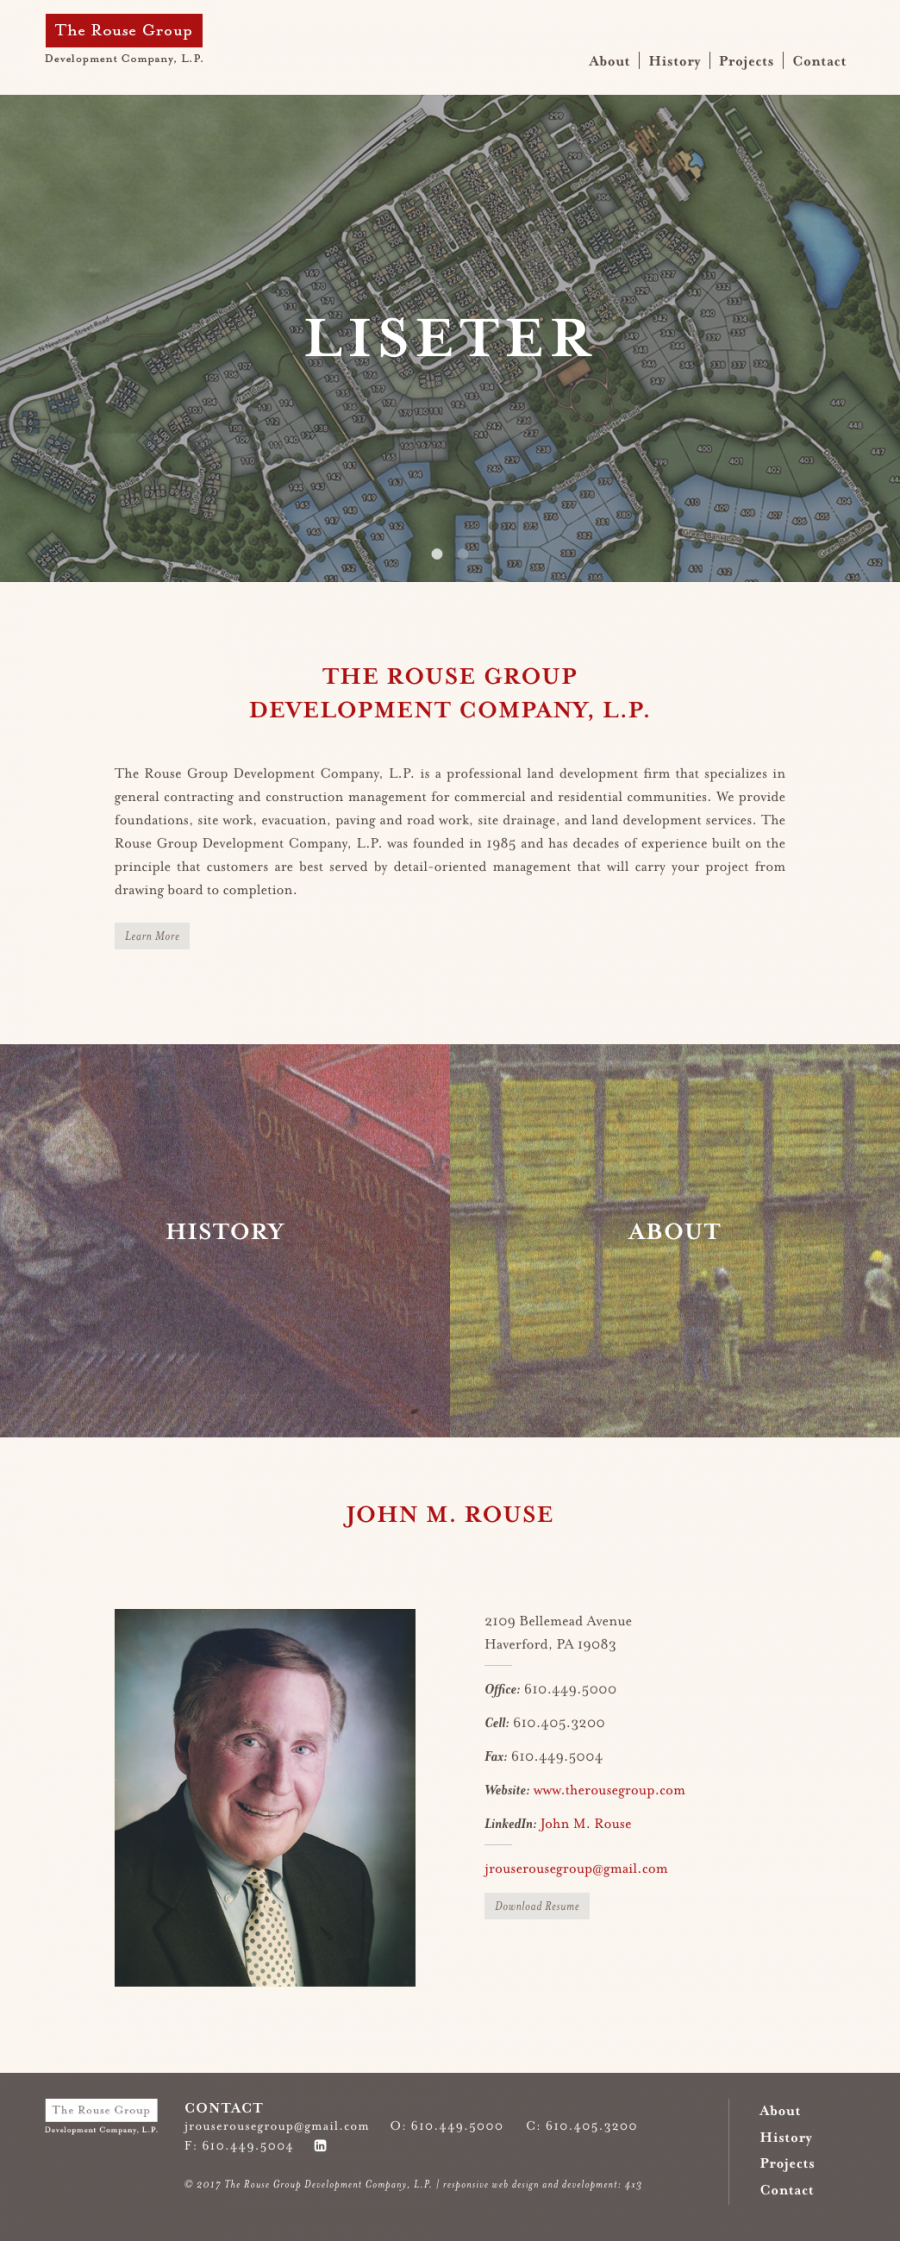 The Rouse Group Development Company homepage